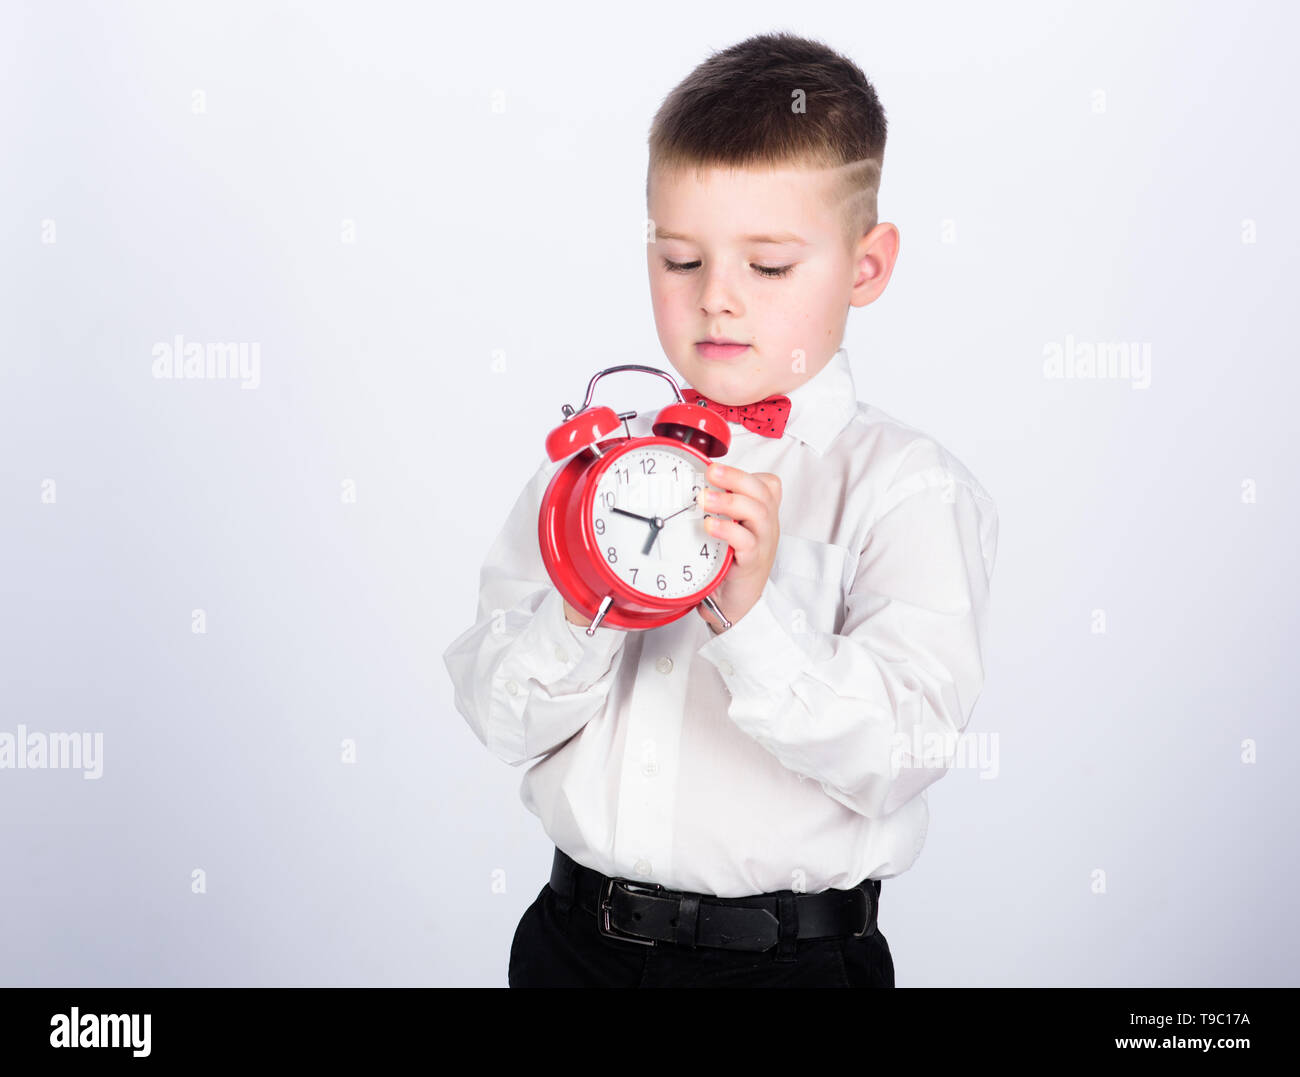 Set up alarm clock. Child little boy hold red clock. It is time. Schedule and timing. Morning routine. Schoolboy with alarm clock. Kid adorable boy white shirt red bow tie. Develop self discipline. - Stock Image